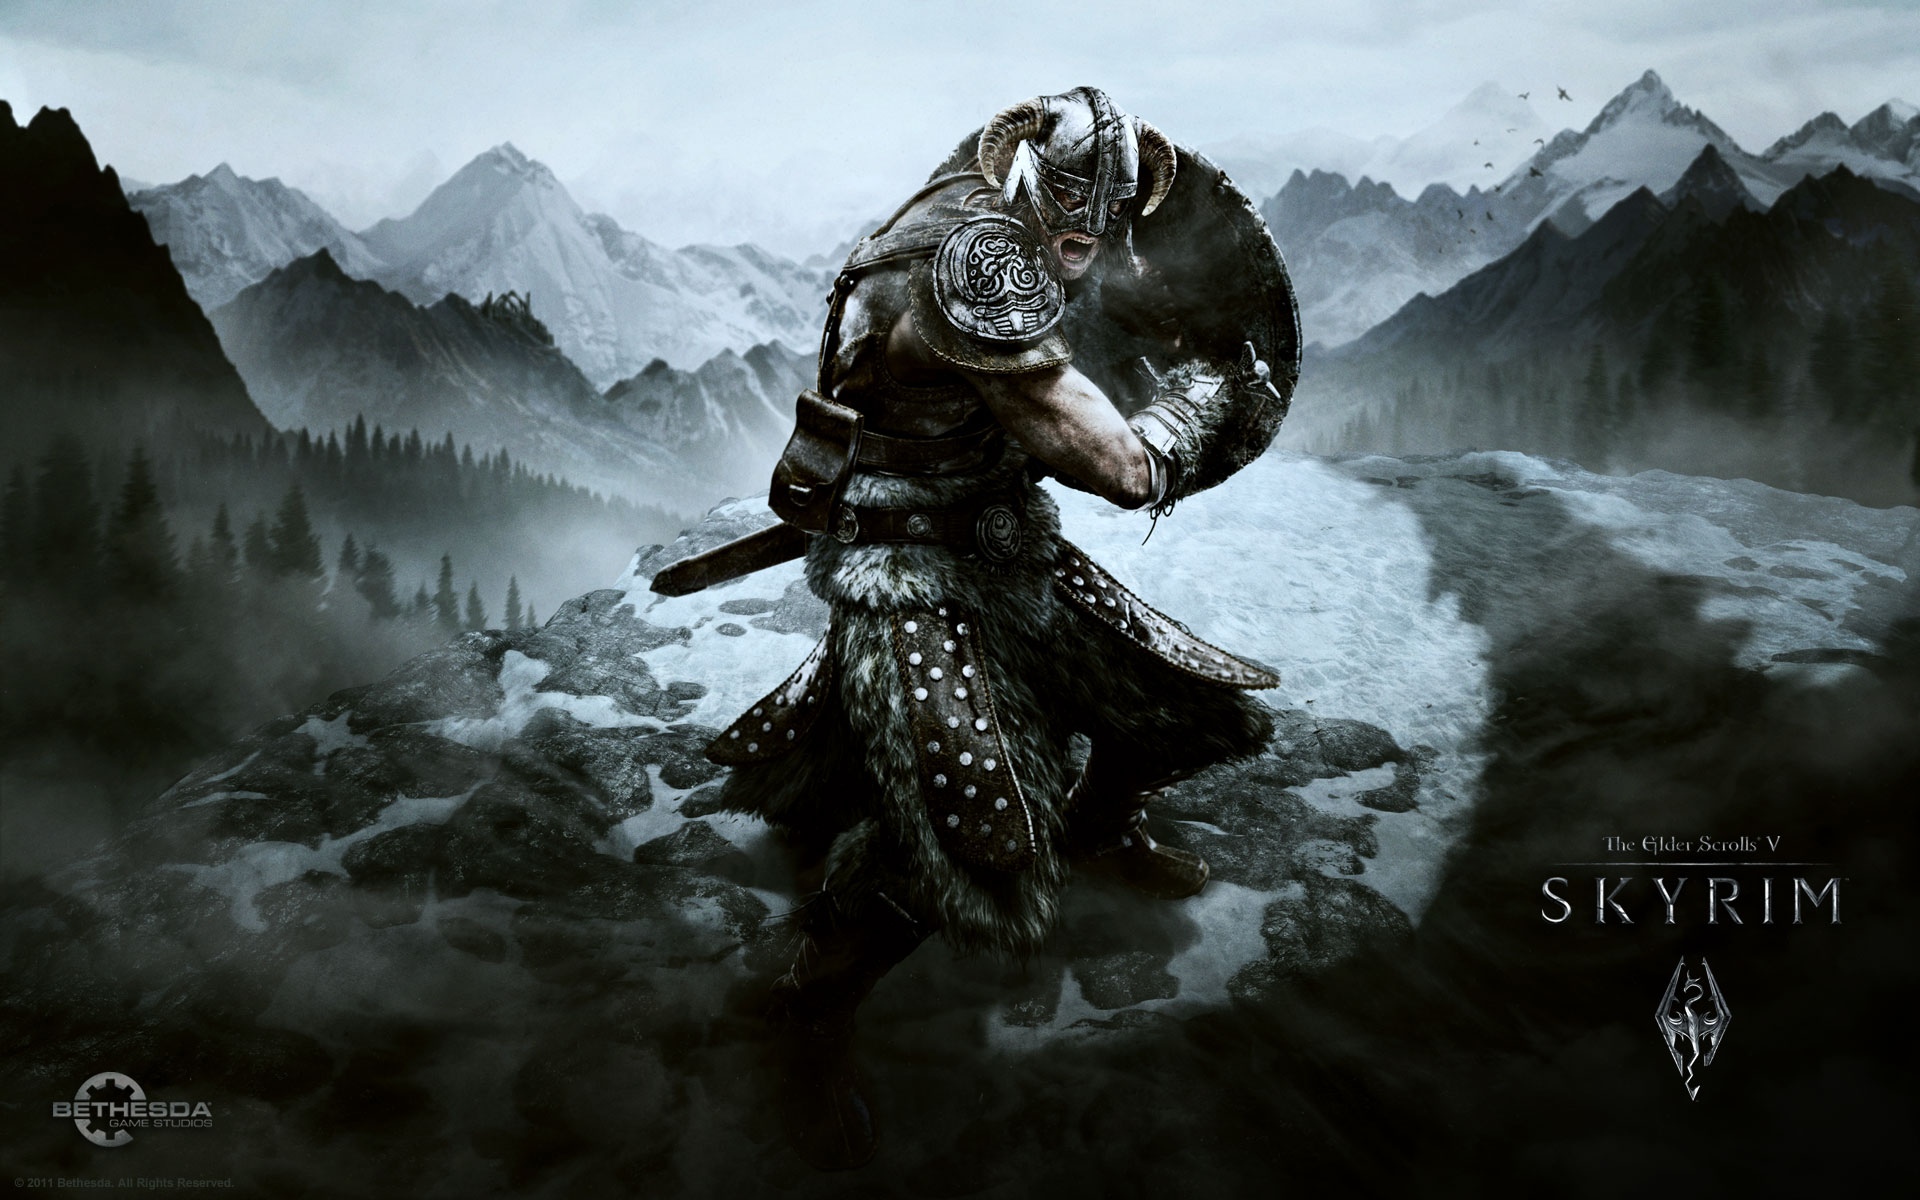 http://4.bp.blogspot.com/-J-jq6TniIXg/TmDfJGB8TOI/AAAAAAAAZHw/7Pc5C7wxI_I/d/The+Elder+Scrolls+V+-+Skyrim+Wallpapers+%25282%2529.jpg